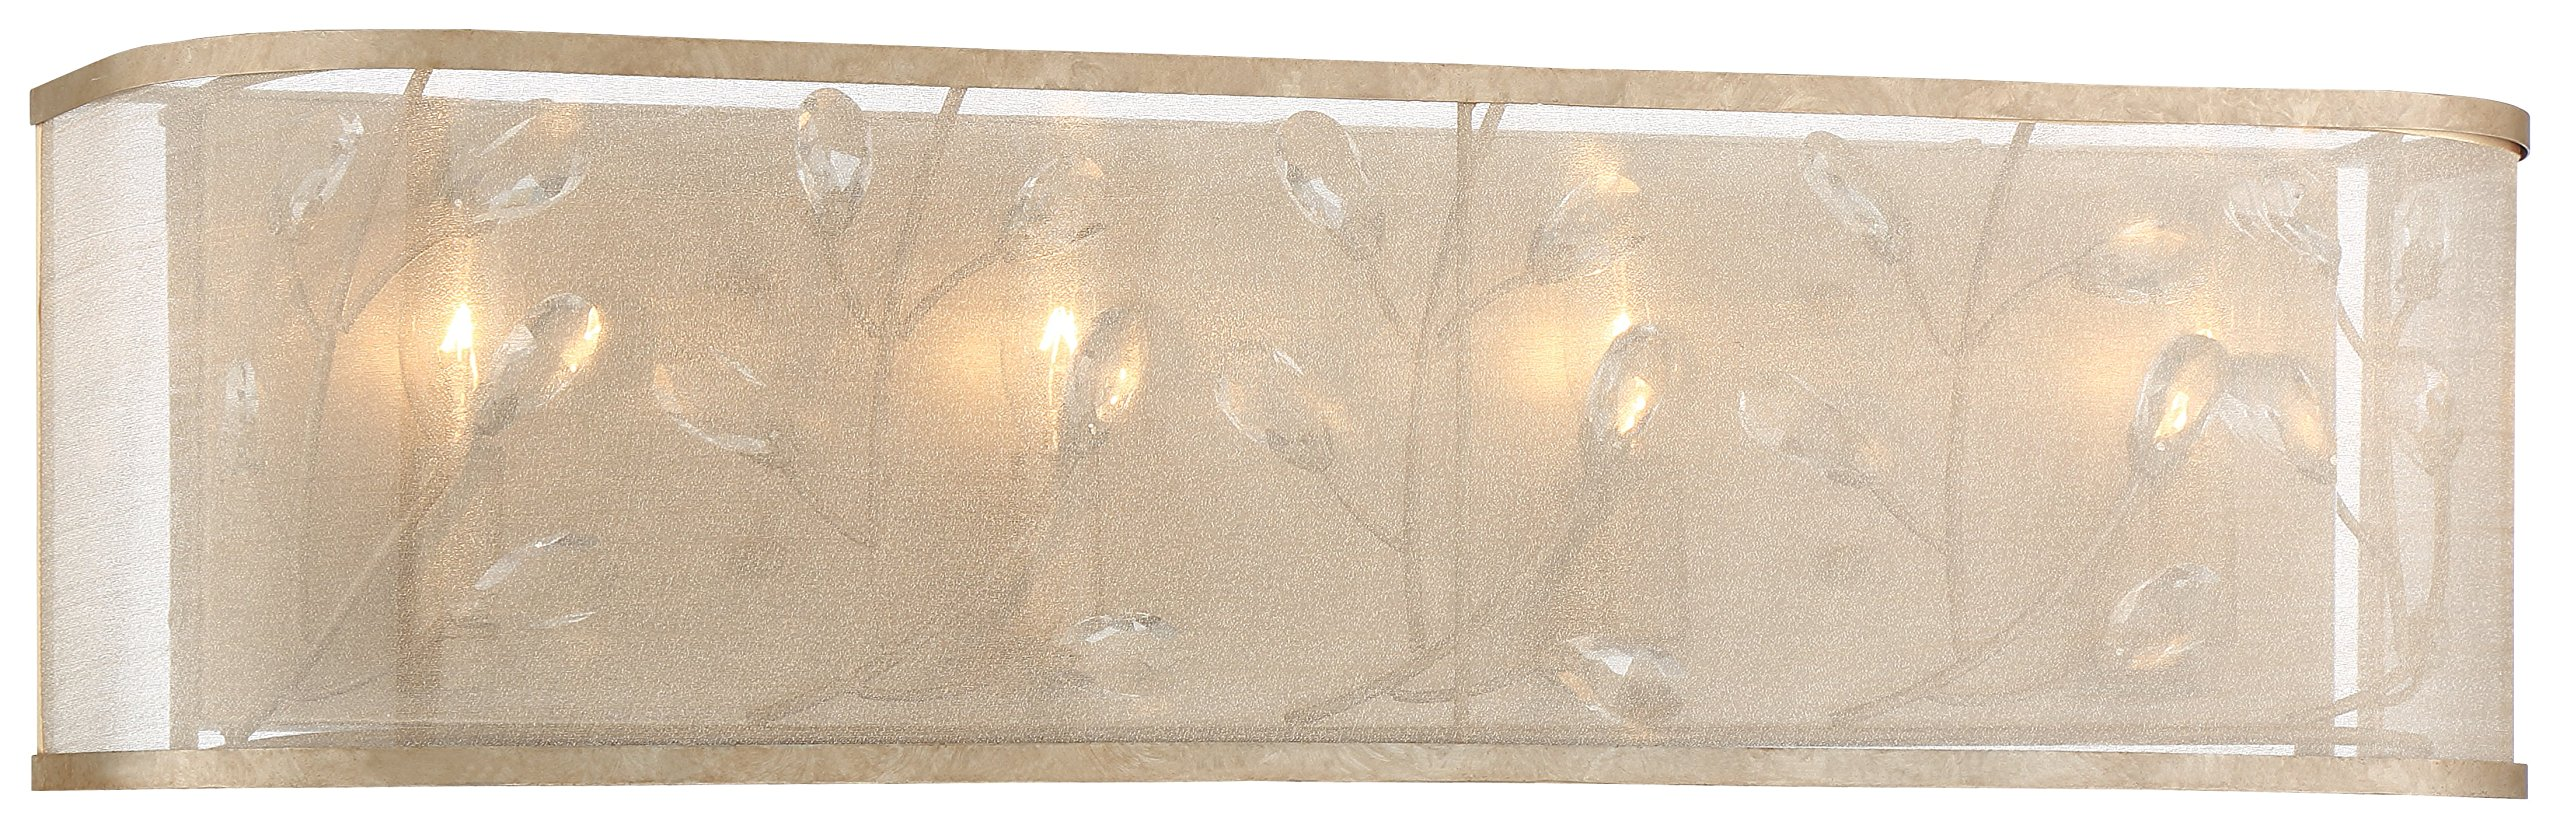 Minka Lavery Minka 3434-252 Transitional Four Light Bath from Sara`S Jewel Collection in Gold, Champ, Gld Leaffinish S